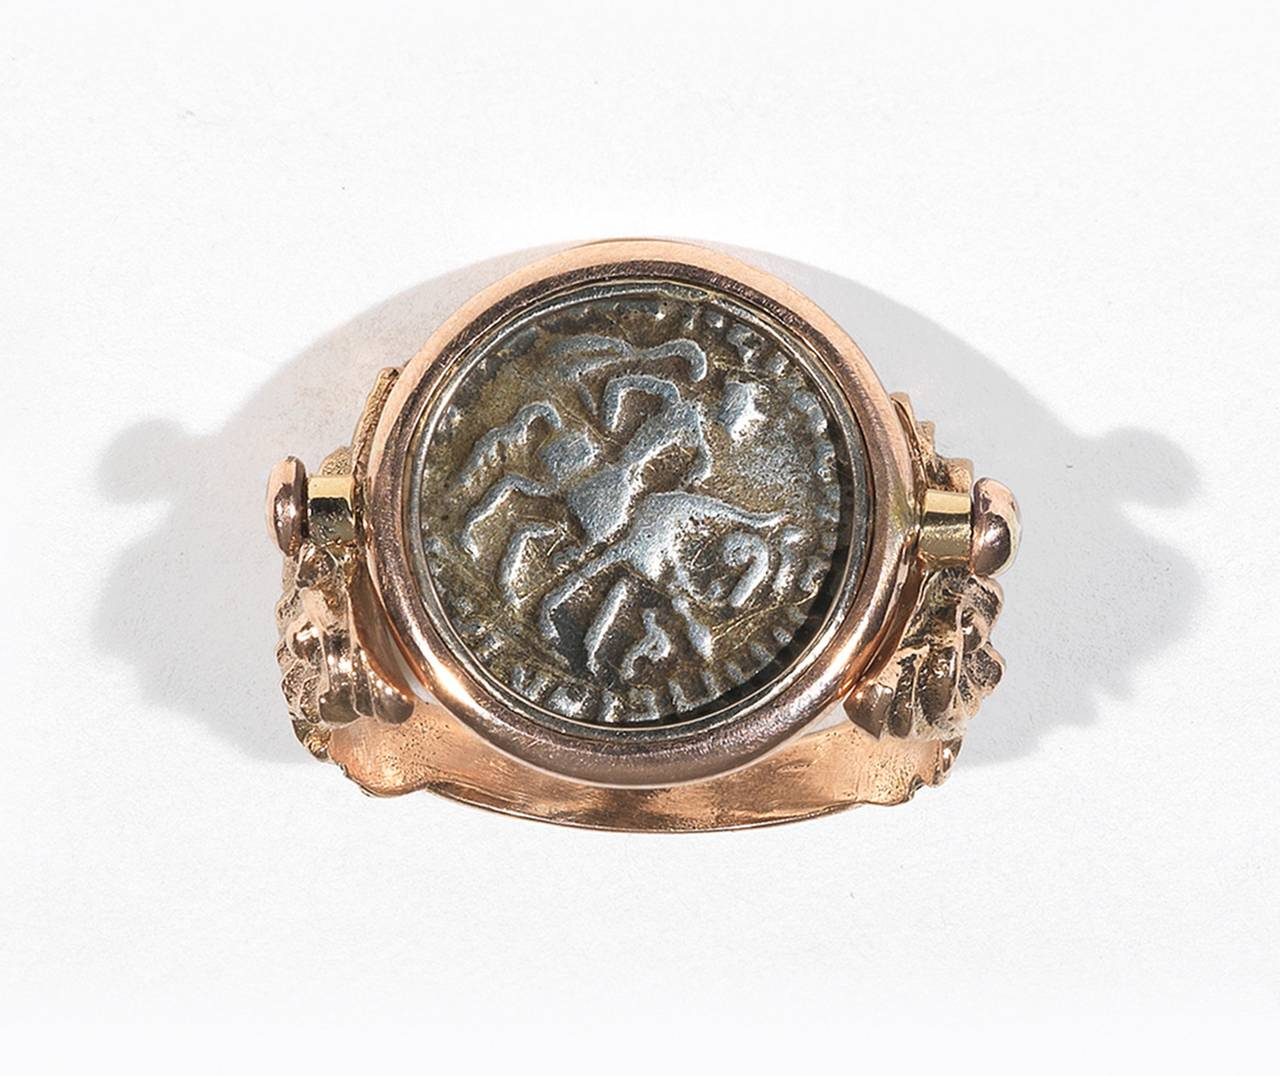 PLEASE NOTE: OUR PRICE IS FULLY INCLUSIVE OF SHIPPING, IMPORTATION TAXES & DUTIES.  Indo-Greek Ellenistic Drachm, circa 1st century A.D.   Mounted in chased shoulders 18Kt red gold setting  Finger size: 7 Weght: 9.8 gr